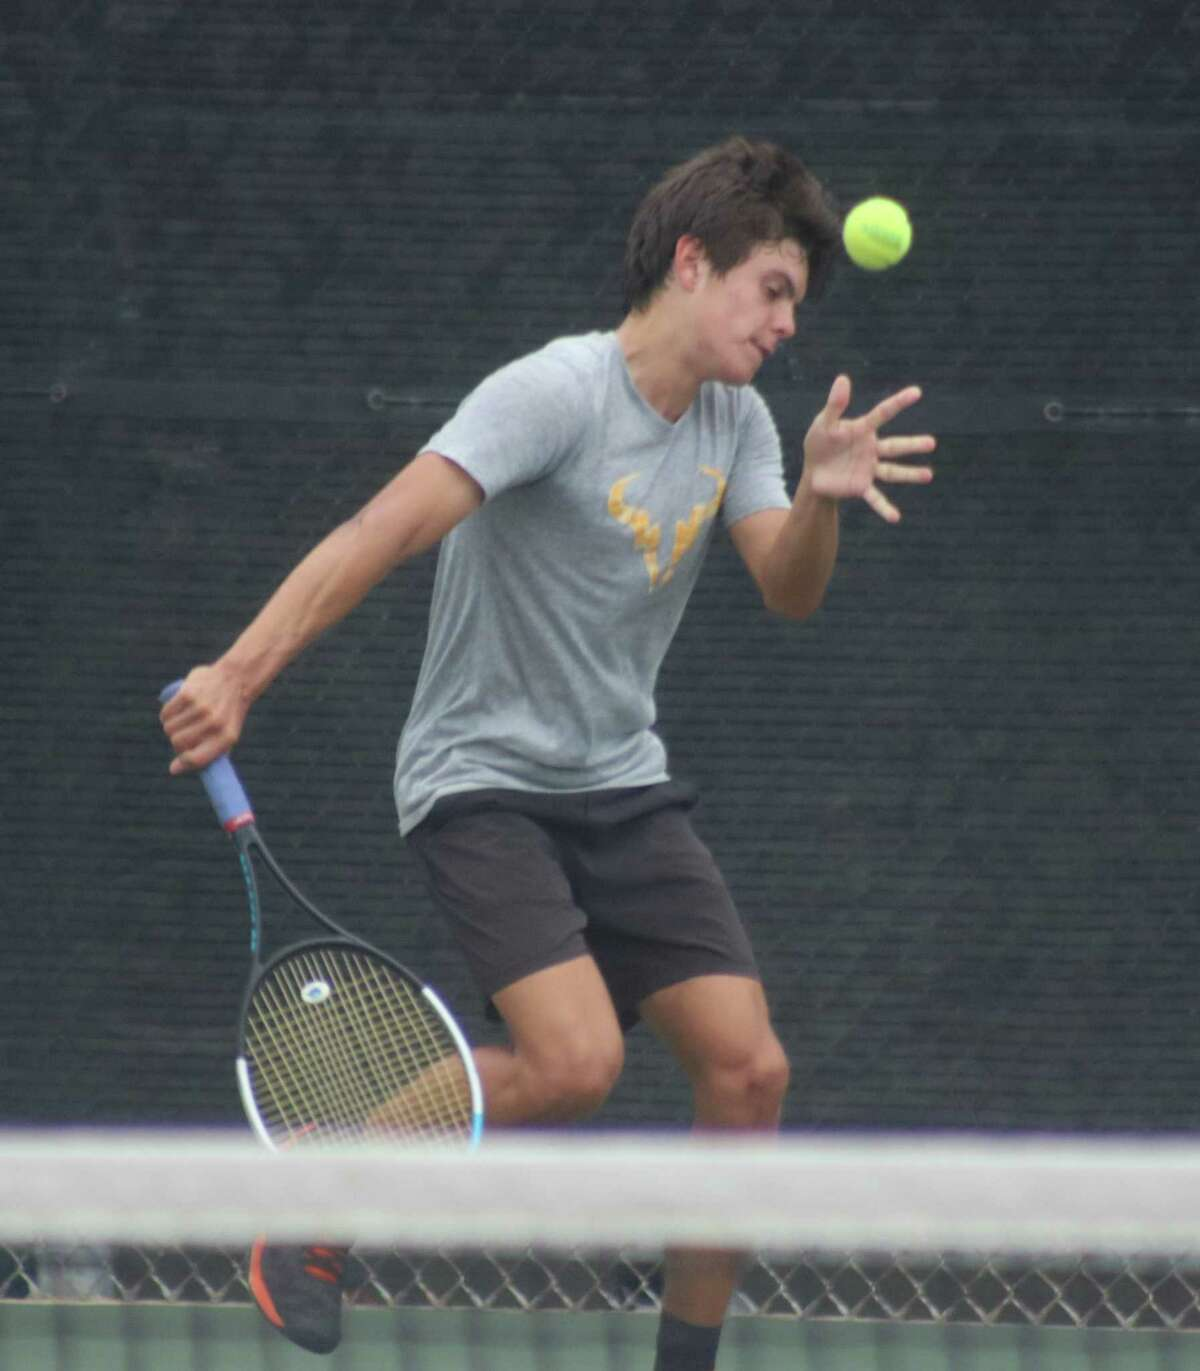 Diego Cromeens returns a tough delivery by a teammate during practice this week. The junior now concentrates on the state playoffs that starts Tuesday.